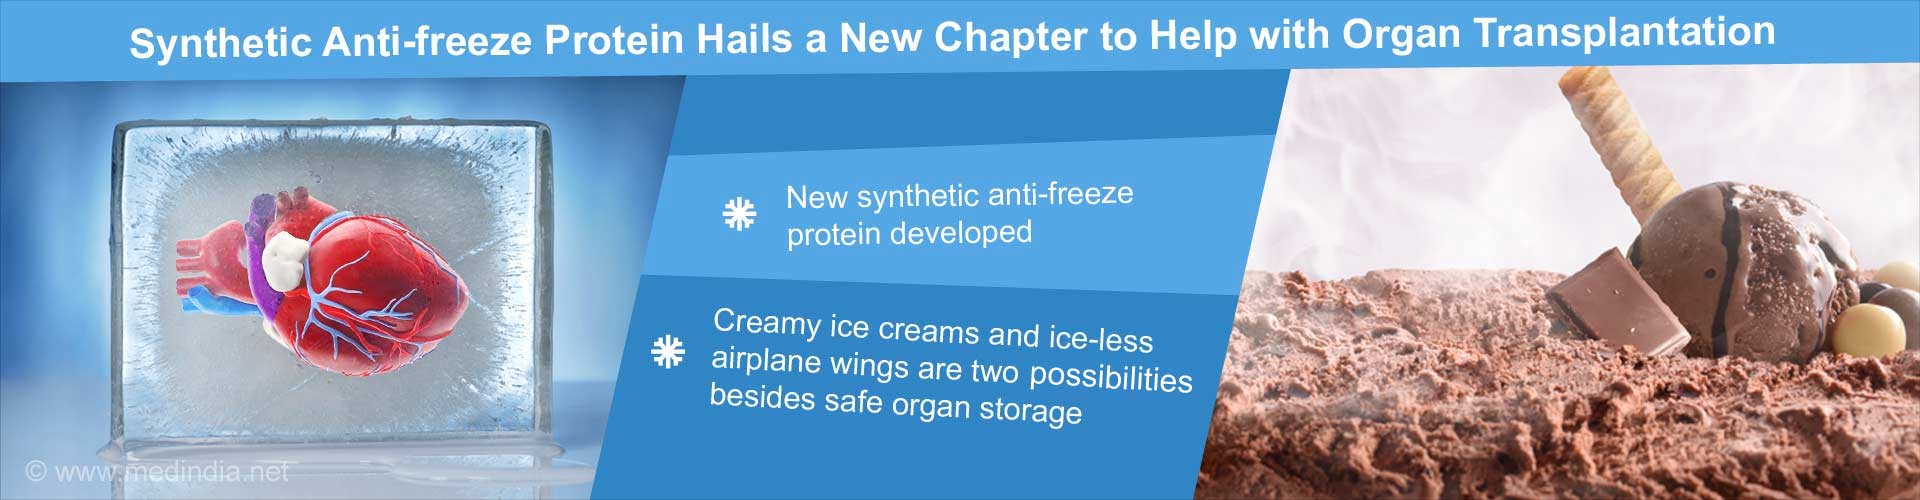 Synthetic Anti-freeze Protein Hails a New Chapter to Help with Organ Transplantation